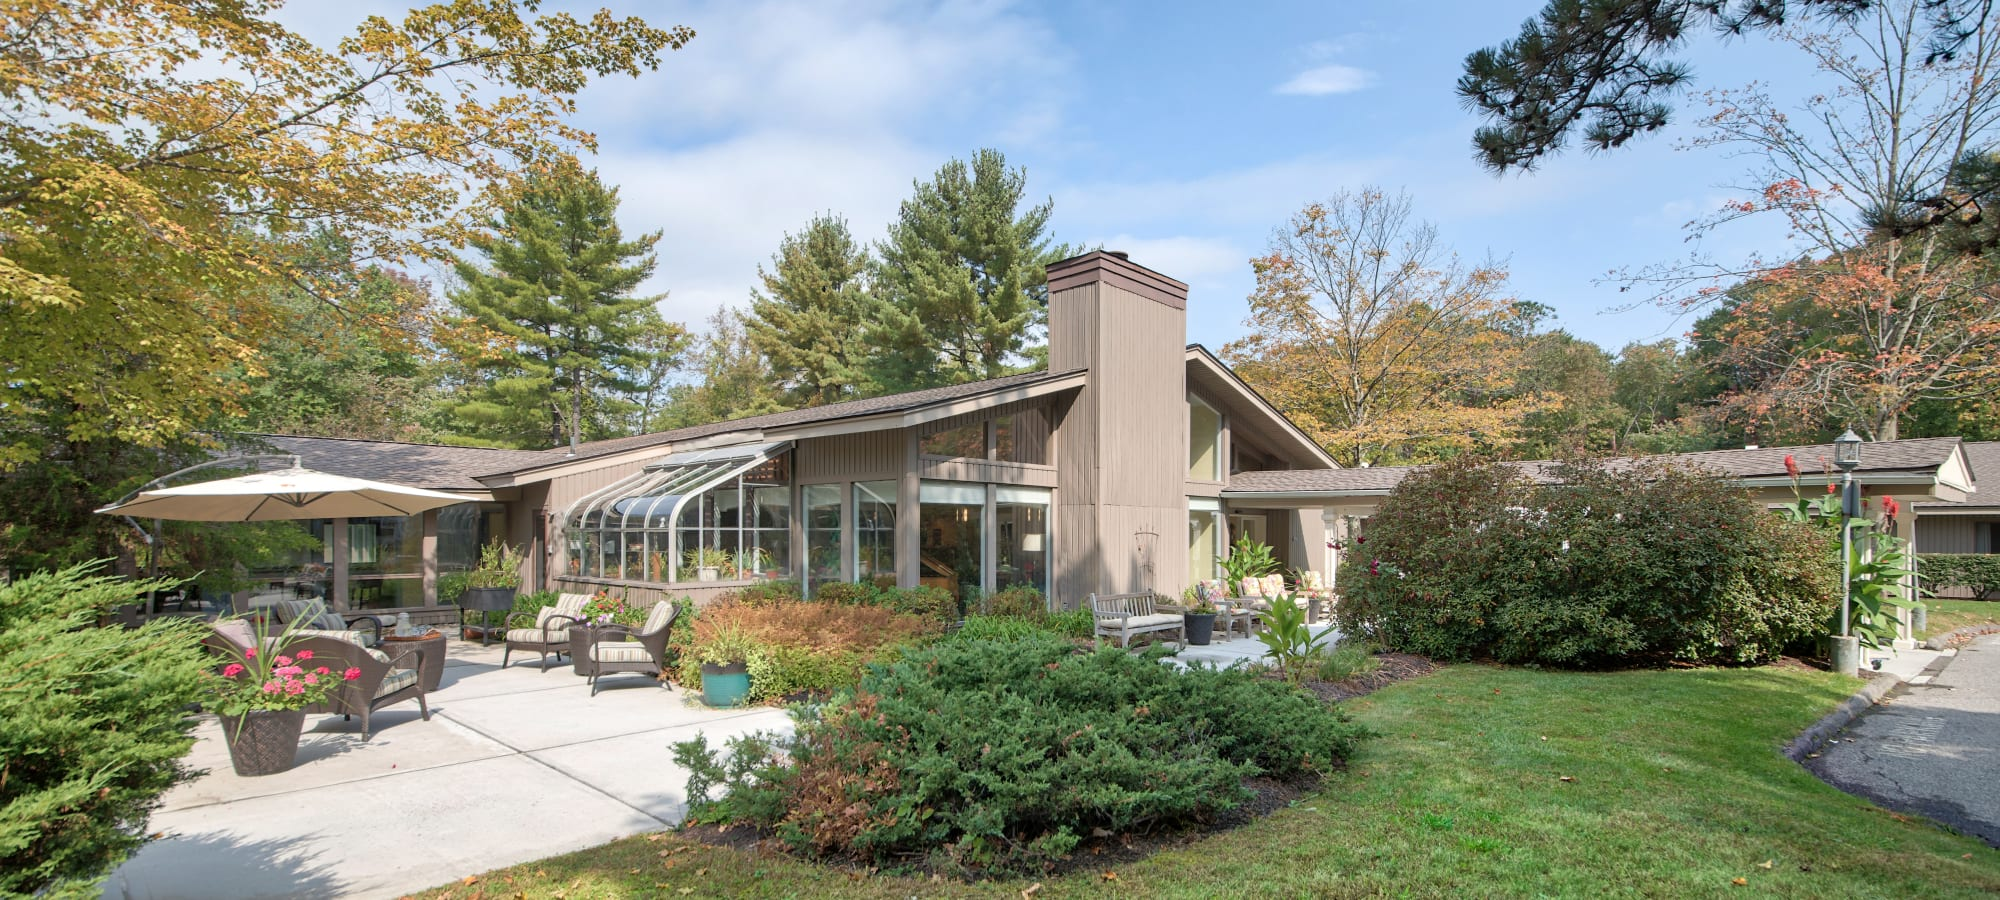 Exterior building image of The Country House in Westchester in Yorktown Heights, New York